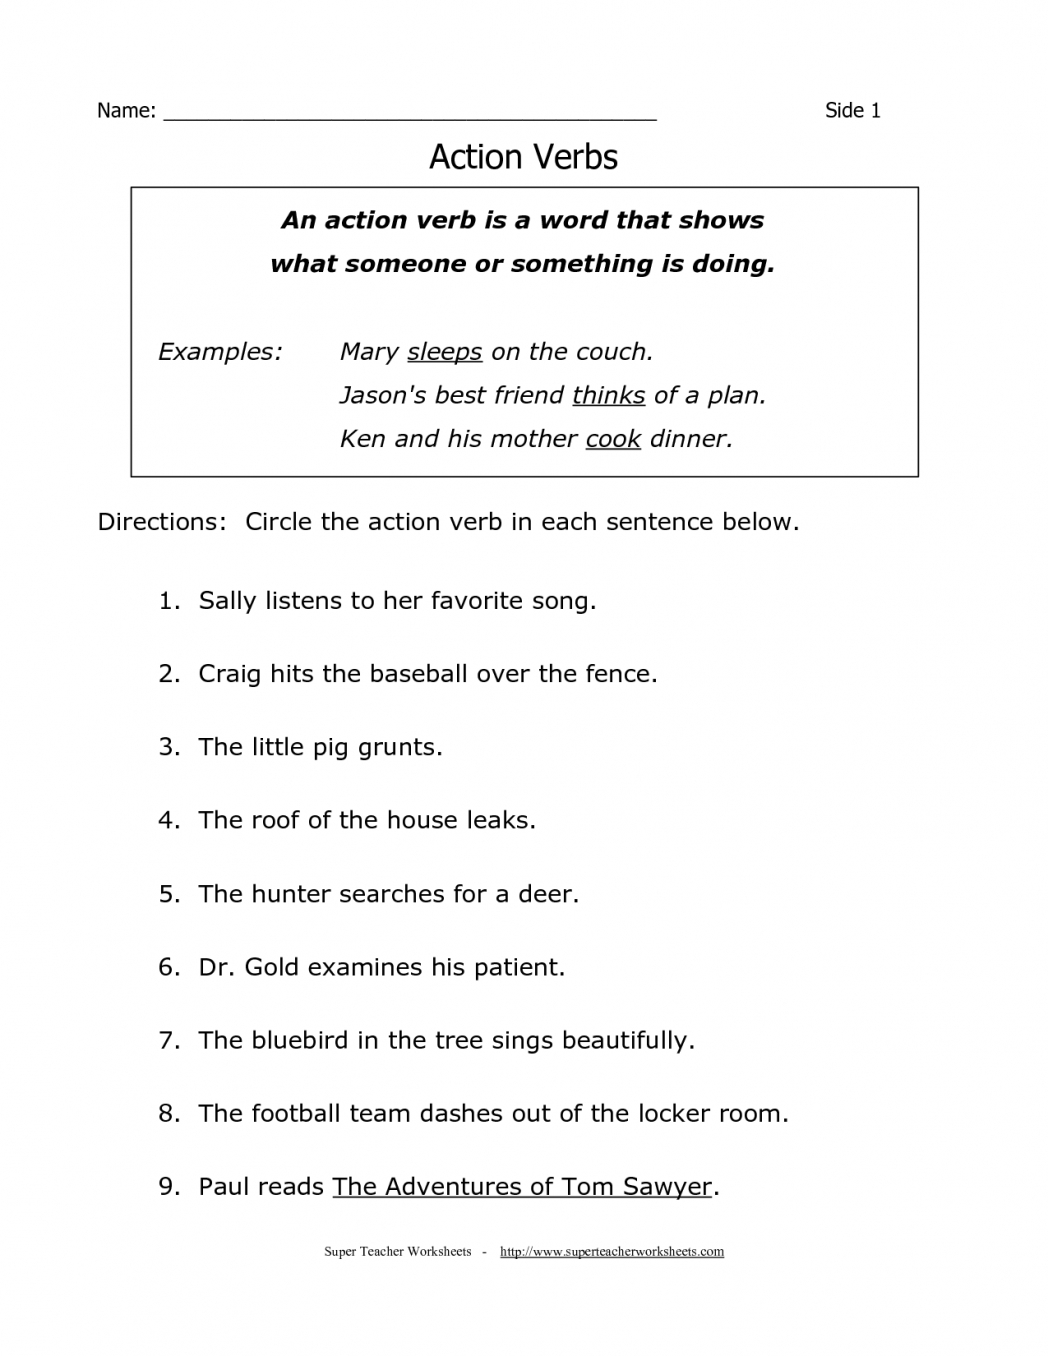 Third Grade Grammar Worksheets To Print | Worksheet News - Free Printable Third Grade Grammar Worksheets